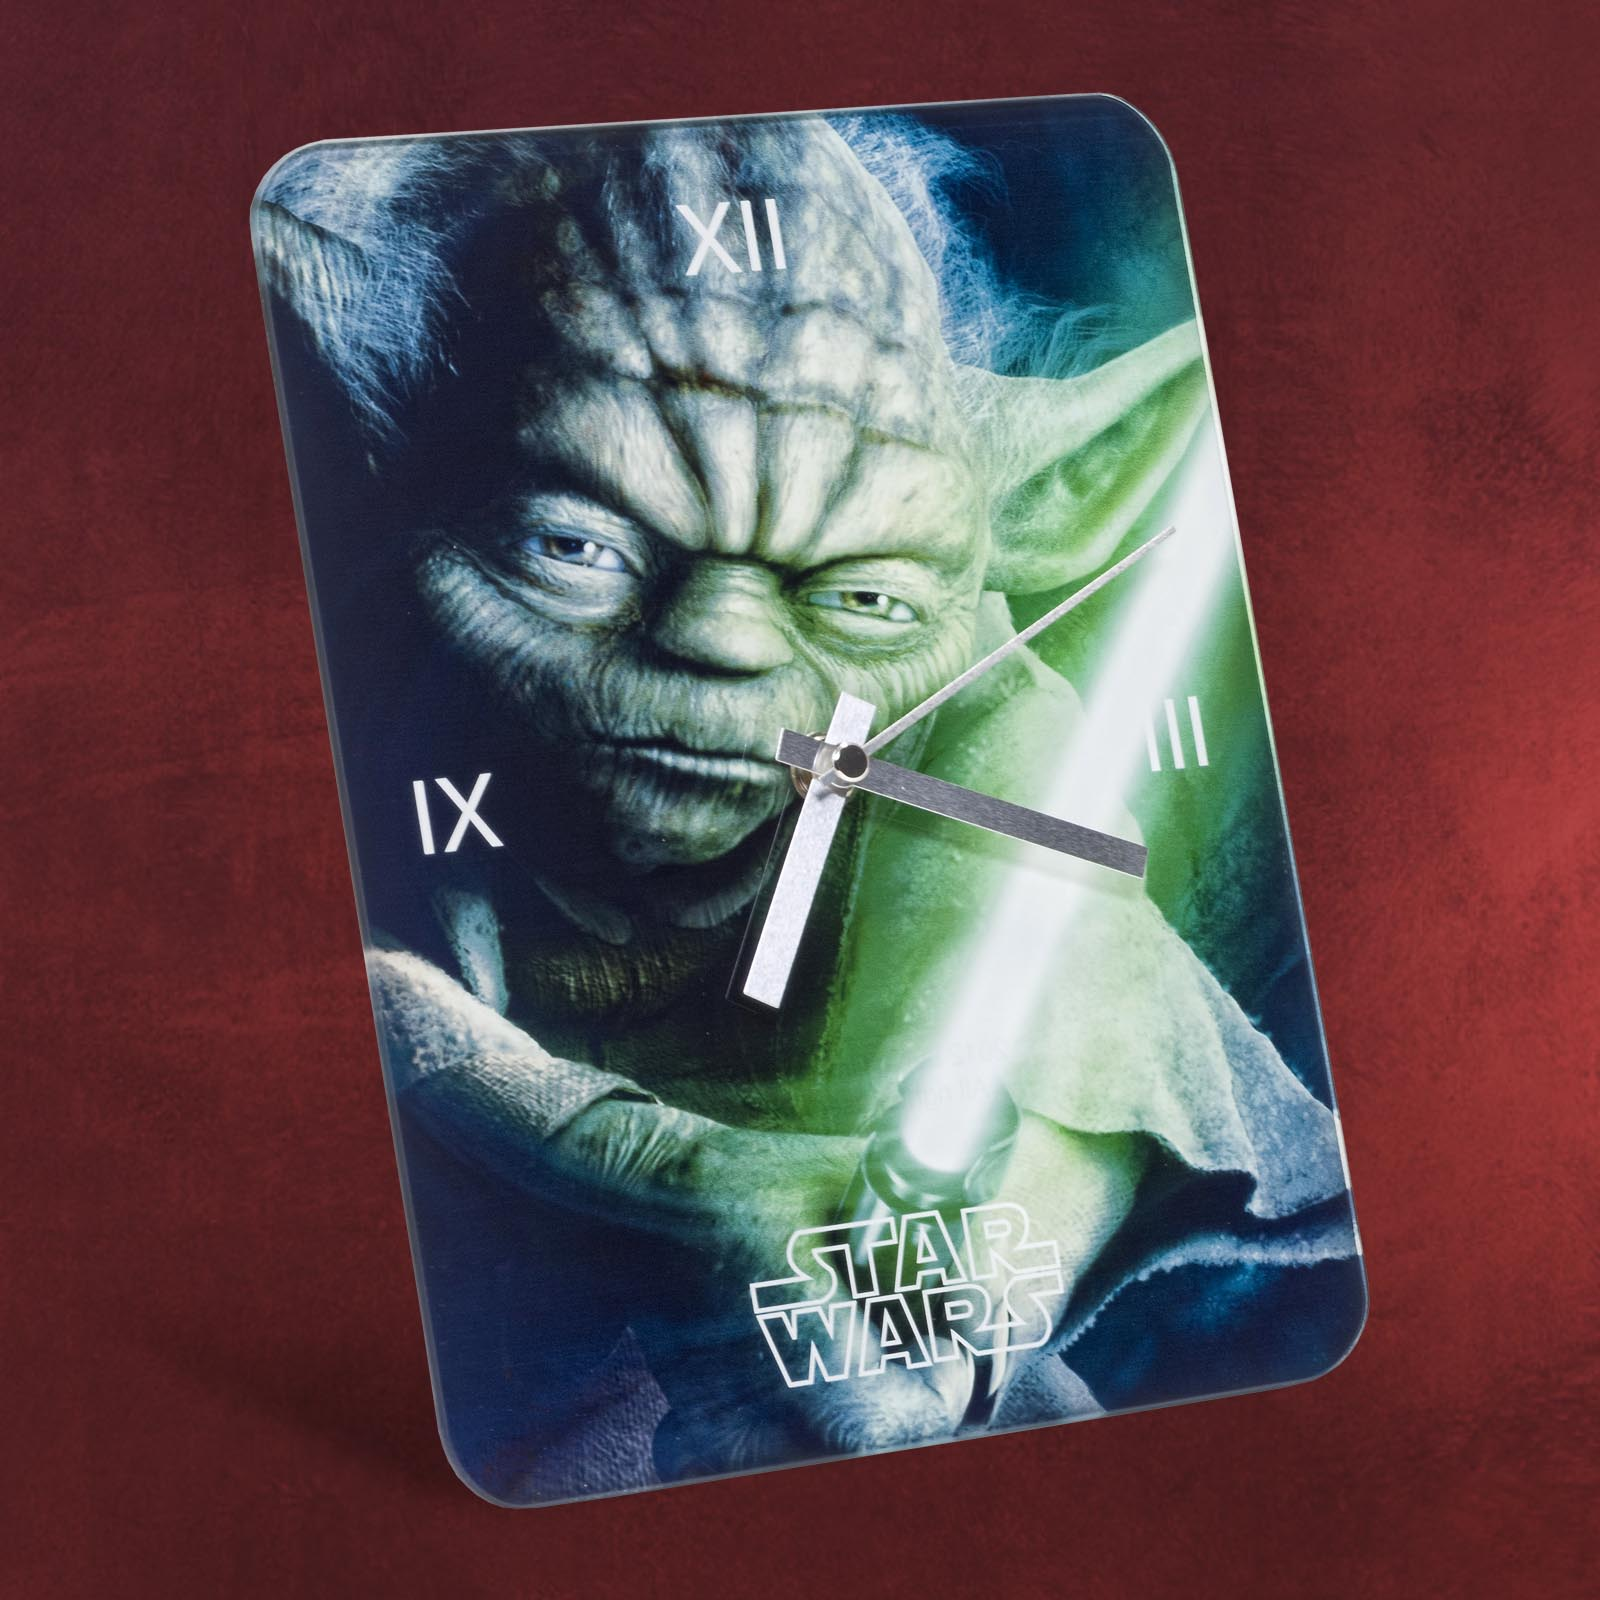 star wars yoda wanduhr aus glas blau gr n 24x18 cm. Black Bedroom Furniture Sets. Home Design Ideas